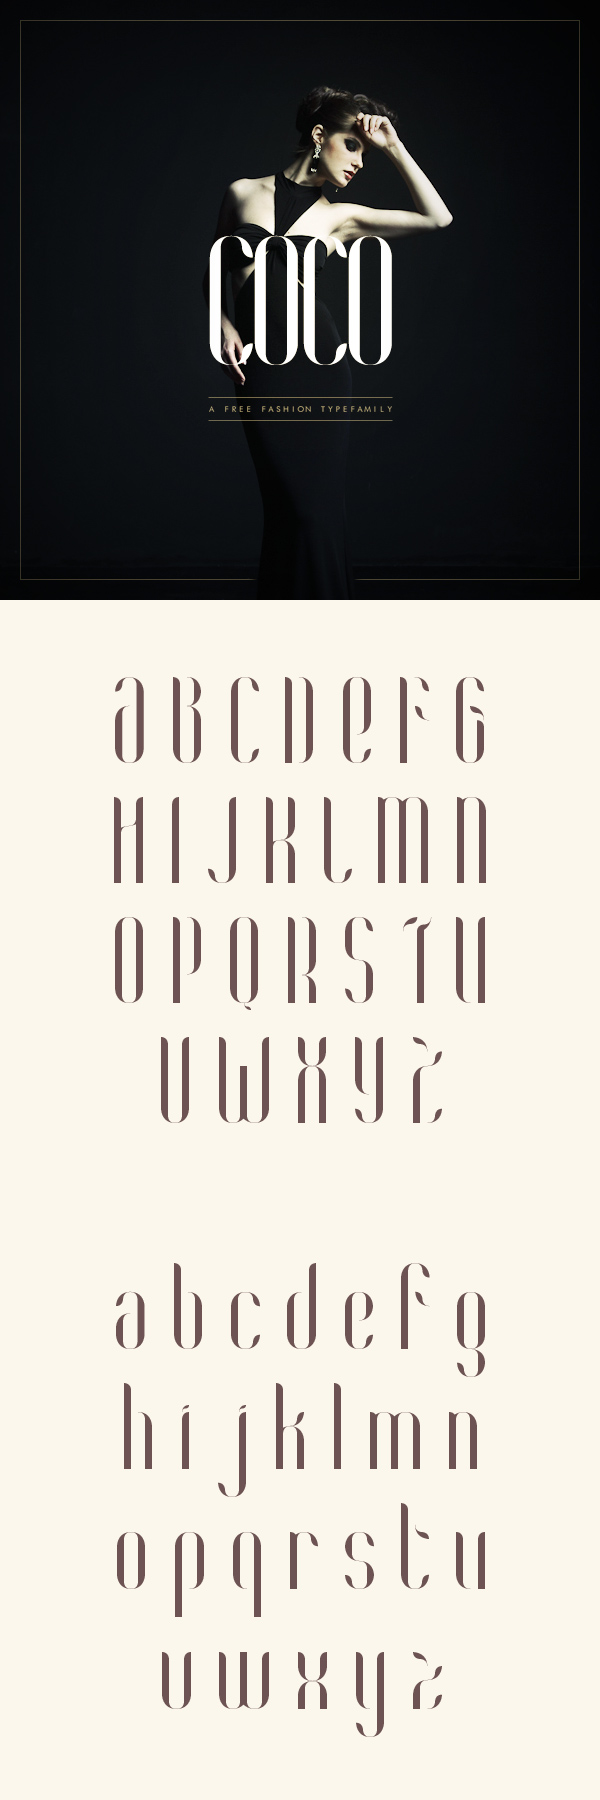 Beautiful, creative free fonts for designers - Coco